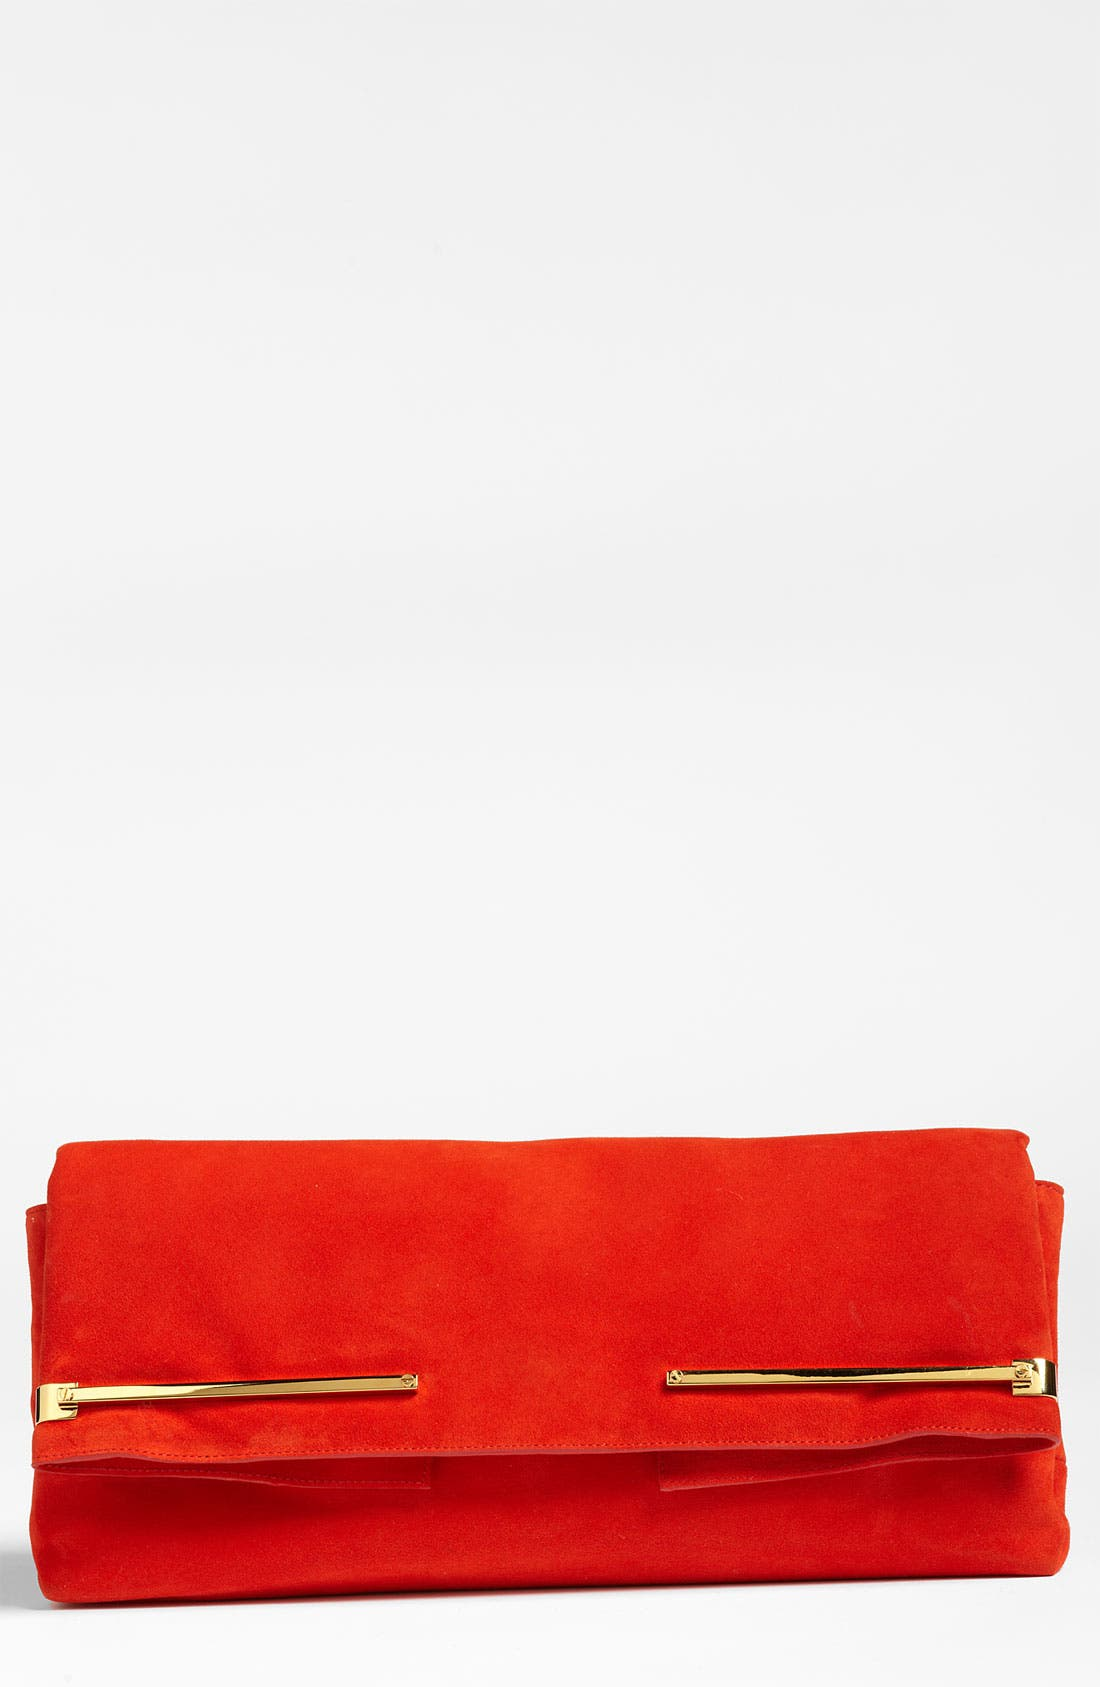 Alternate Image 1 Selected - Lanvin Leather Clutch